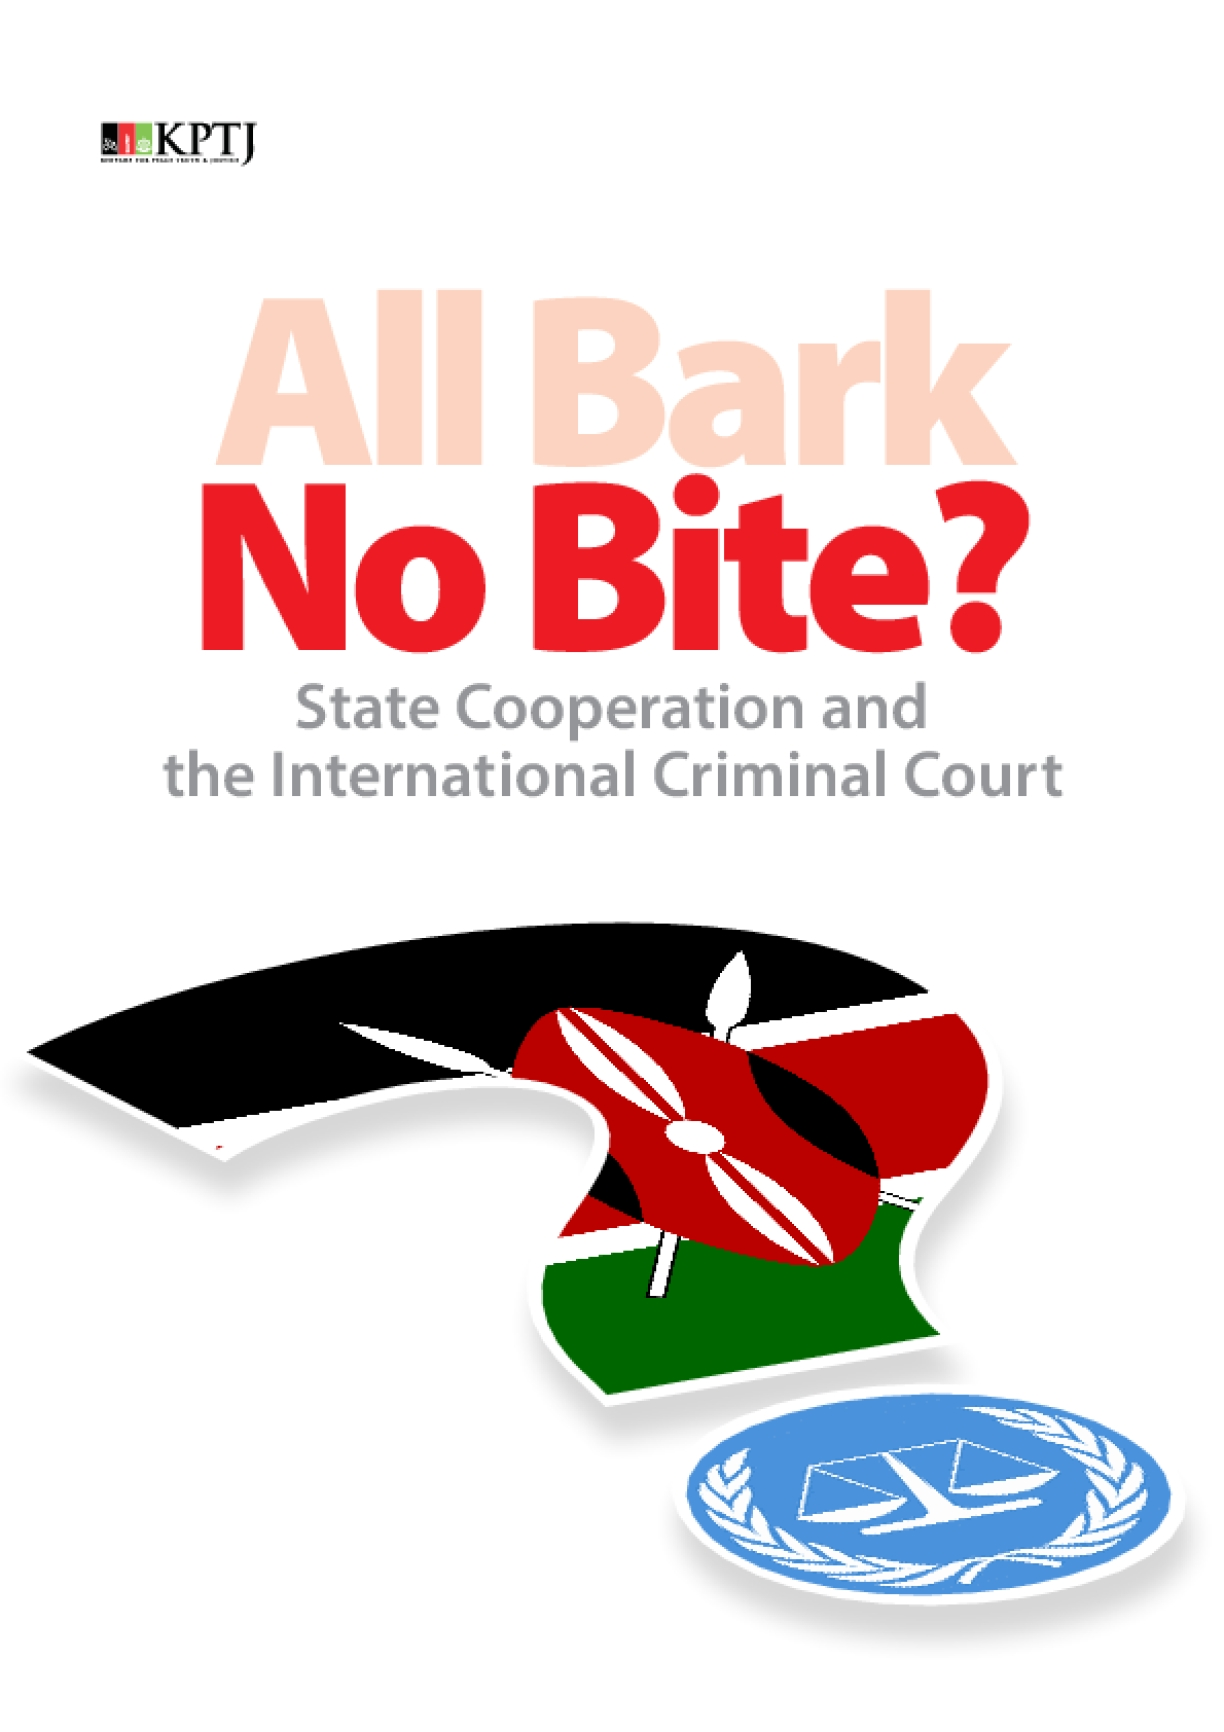 All Bark No Bite? State Cooperation with the International Criminal Court